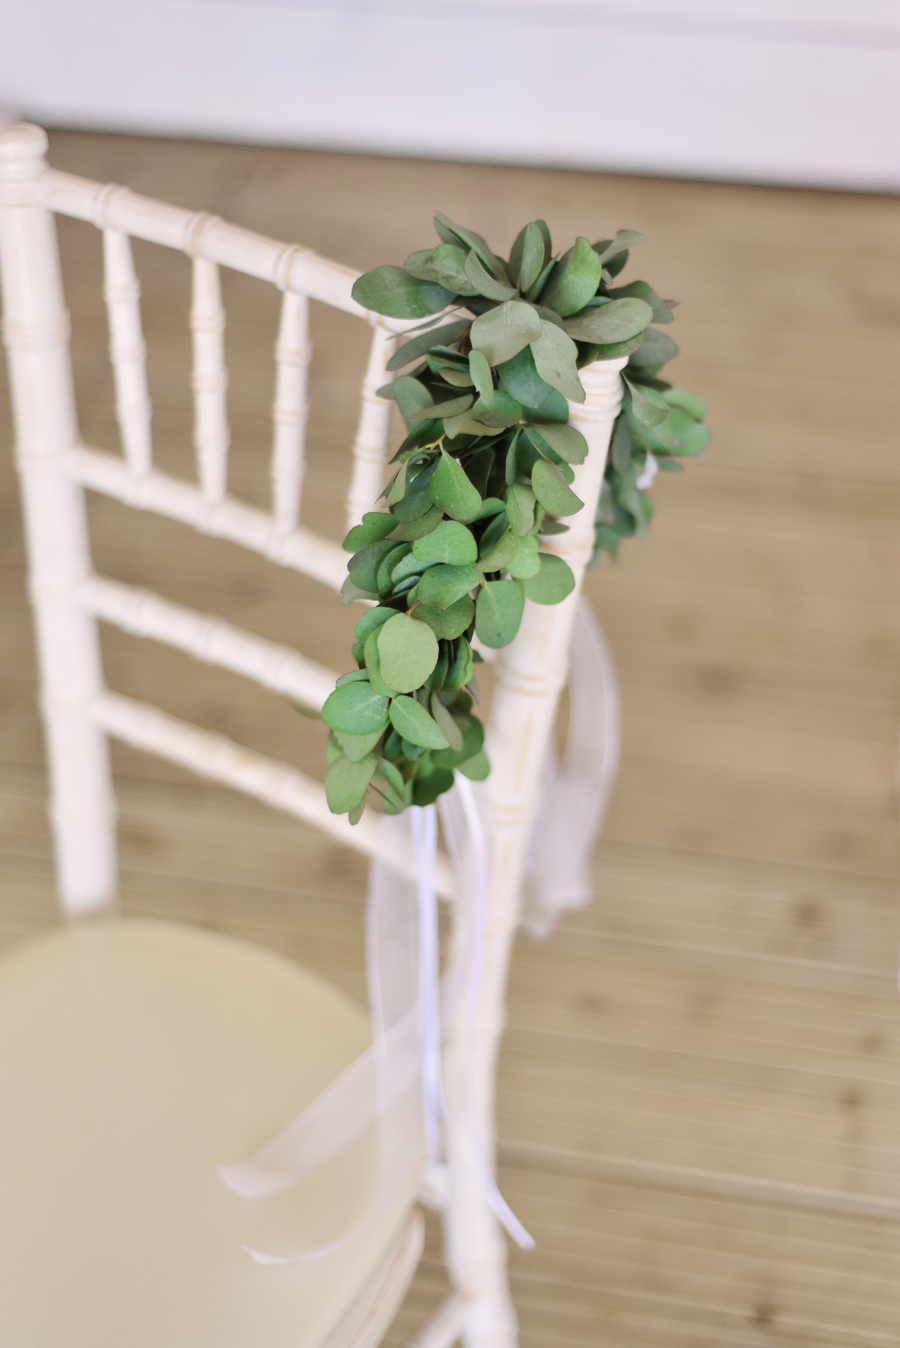 Marina Walker Photography's styled shoot with succulents and affordable details for a minimalist boho wedding (3)